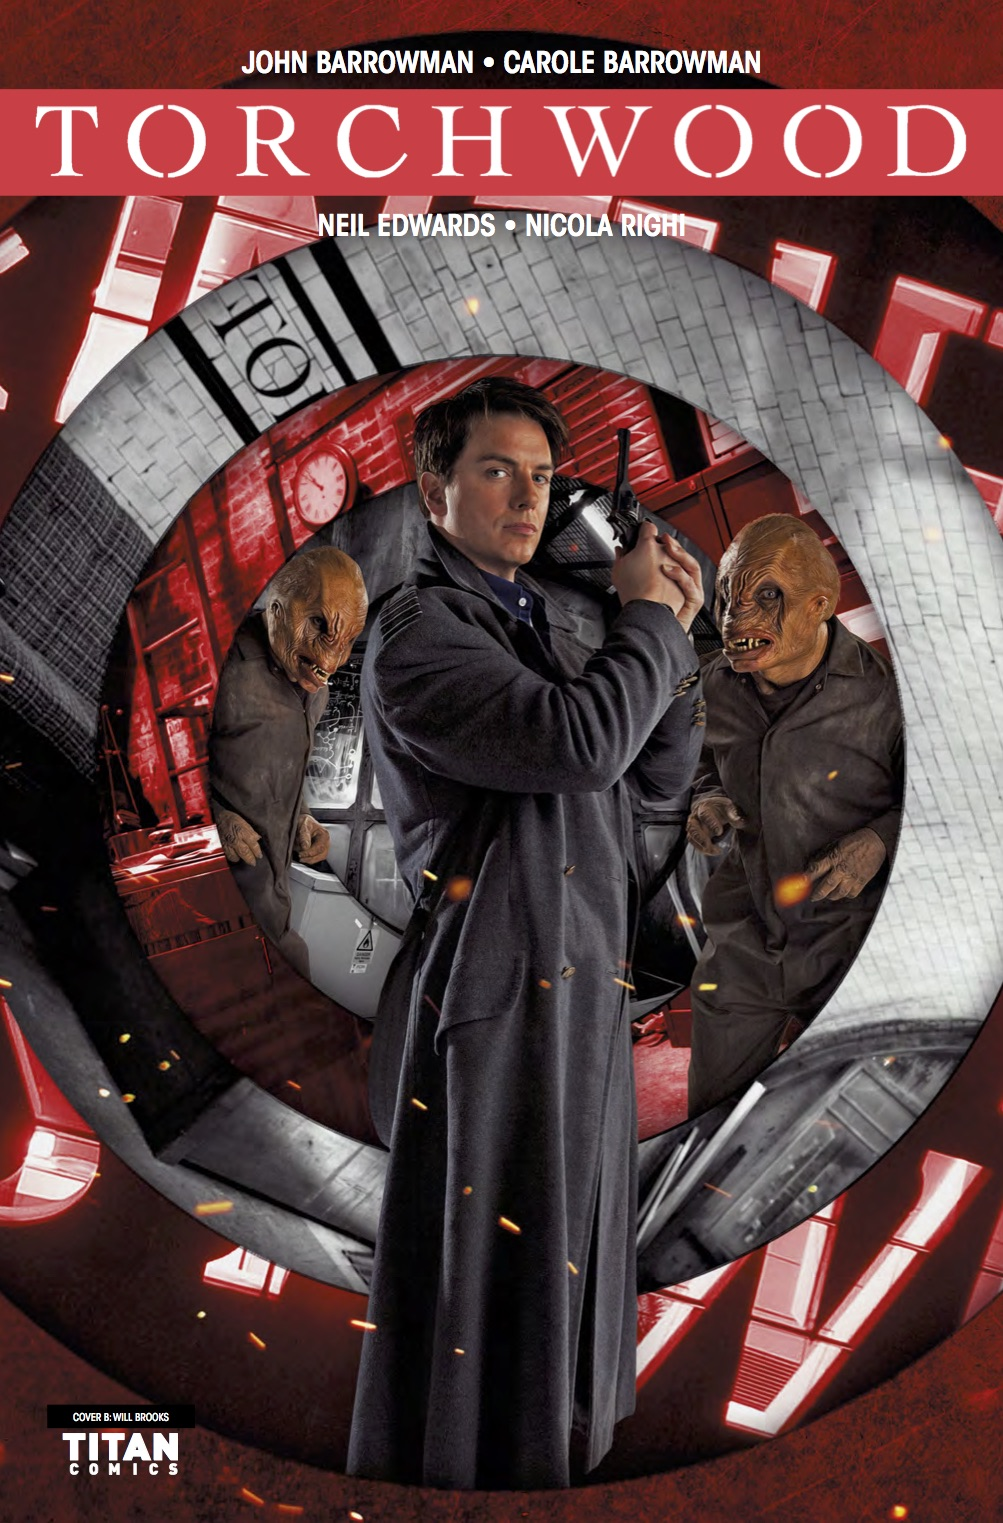 Torchwood Station Zero #4 Cover B (Credit: Titan / Will Brooks)